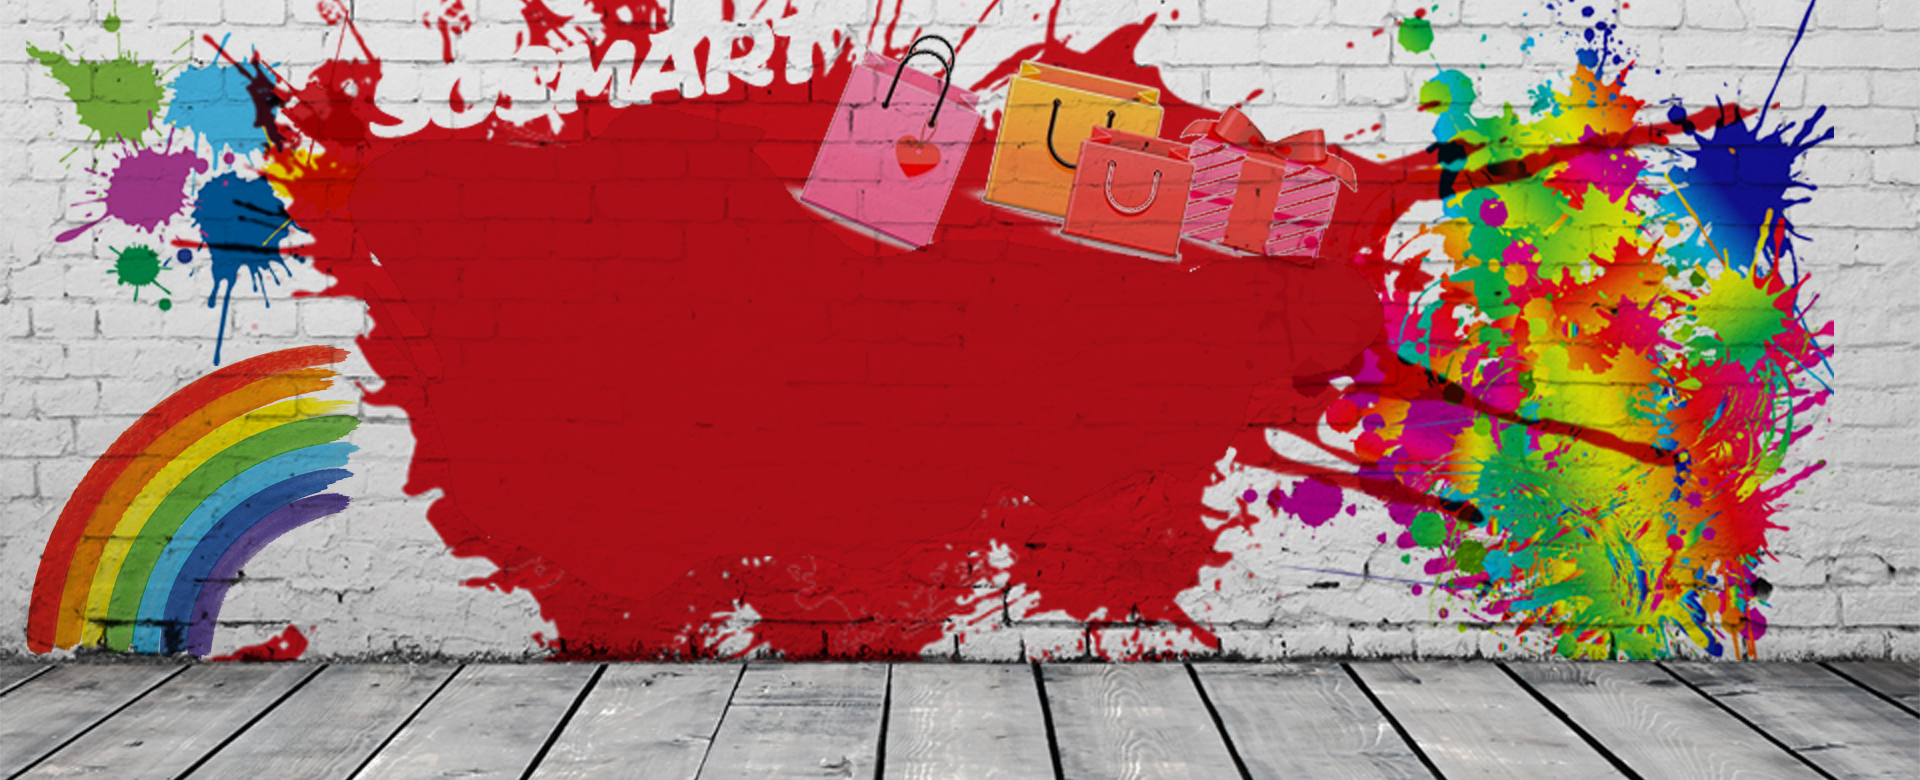 graffiti background  graffiti  wall  painting background